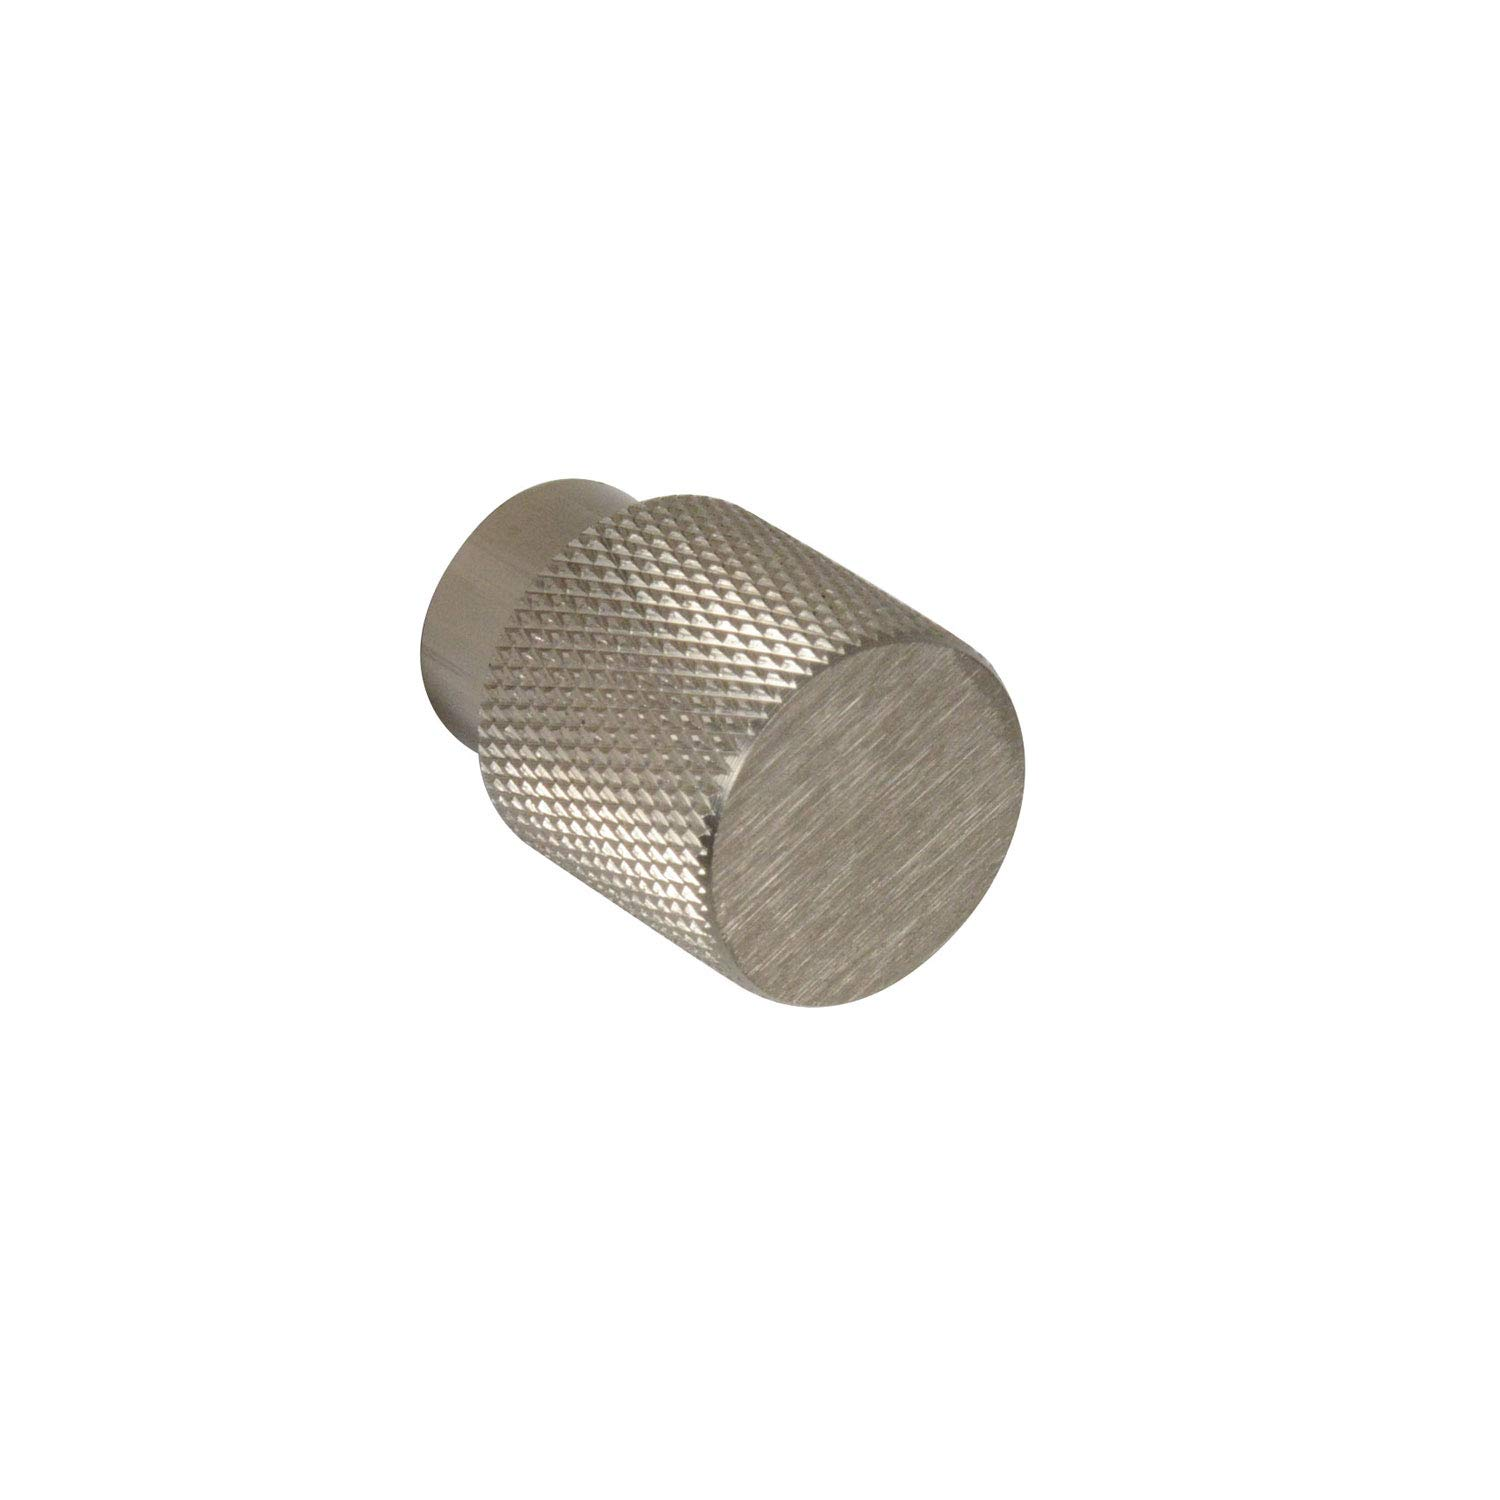 #6500 CKP Brand Linear Aluminum 3/4 in. (20mm) Knurled Knob, Brushed Nickel - 25 Pack by CKP (Image #1)